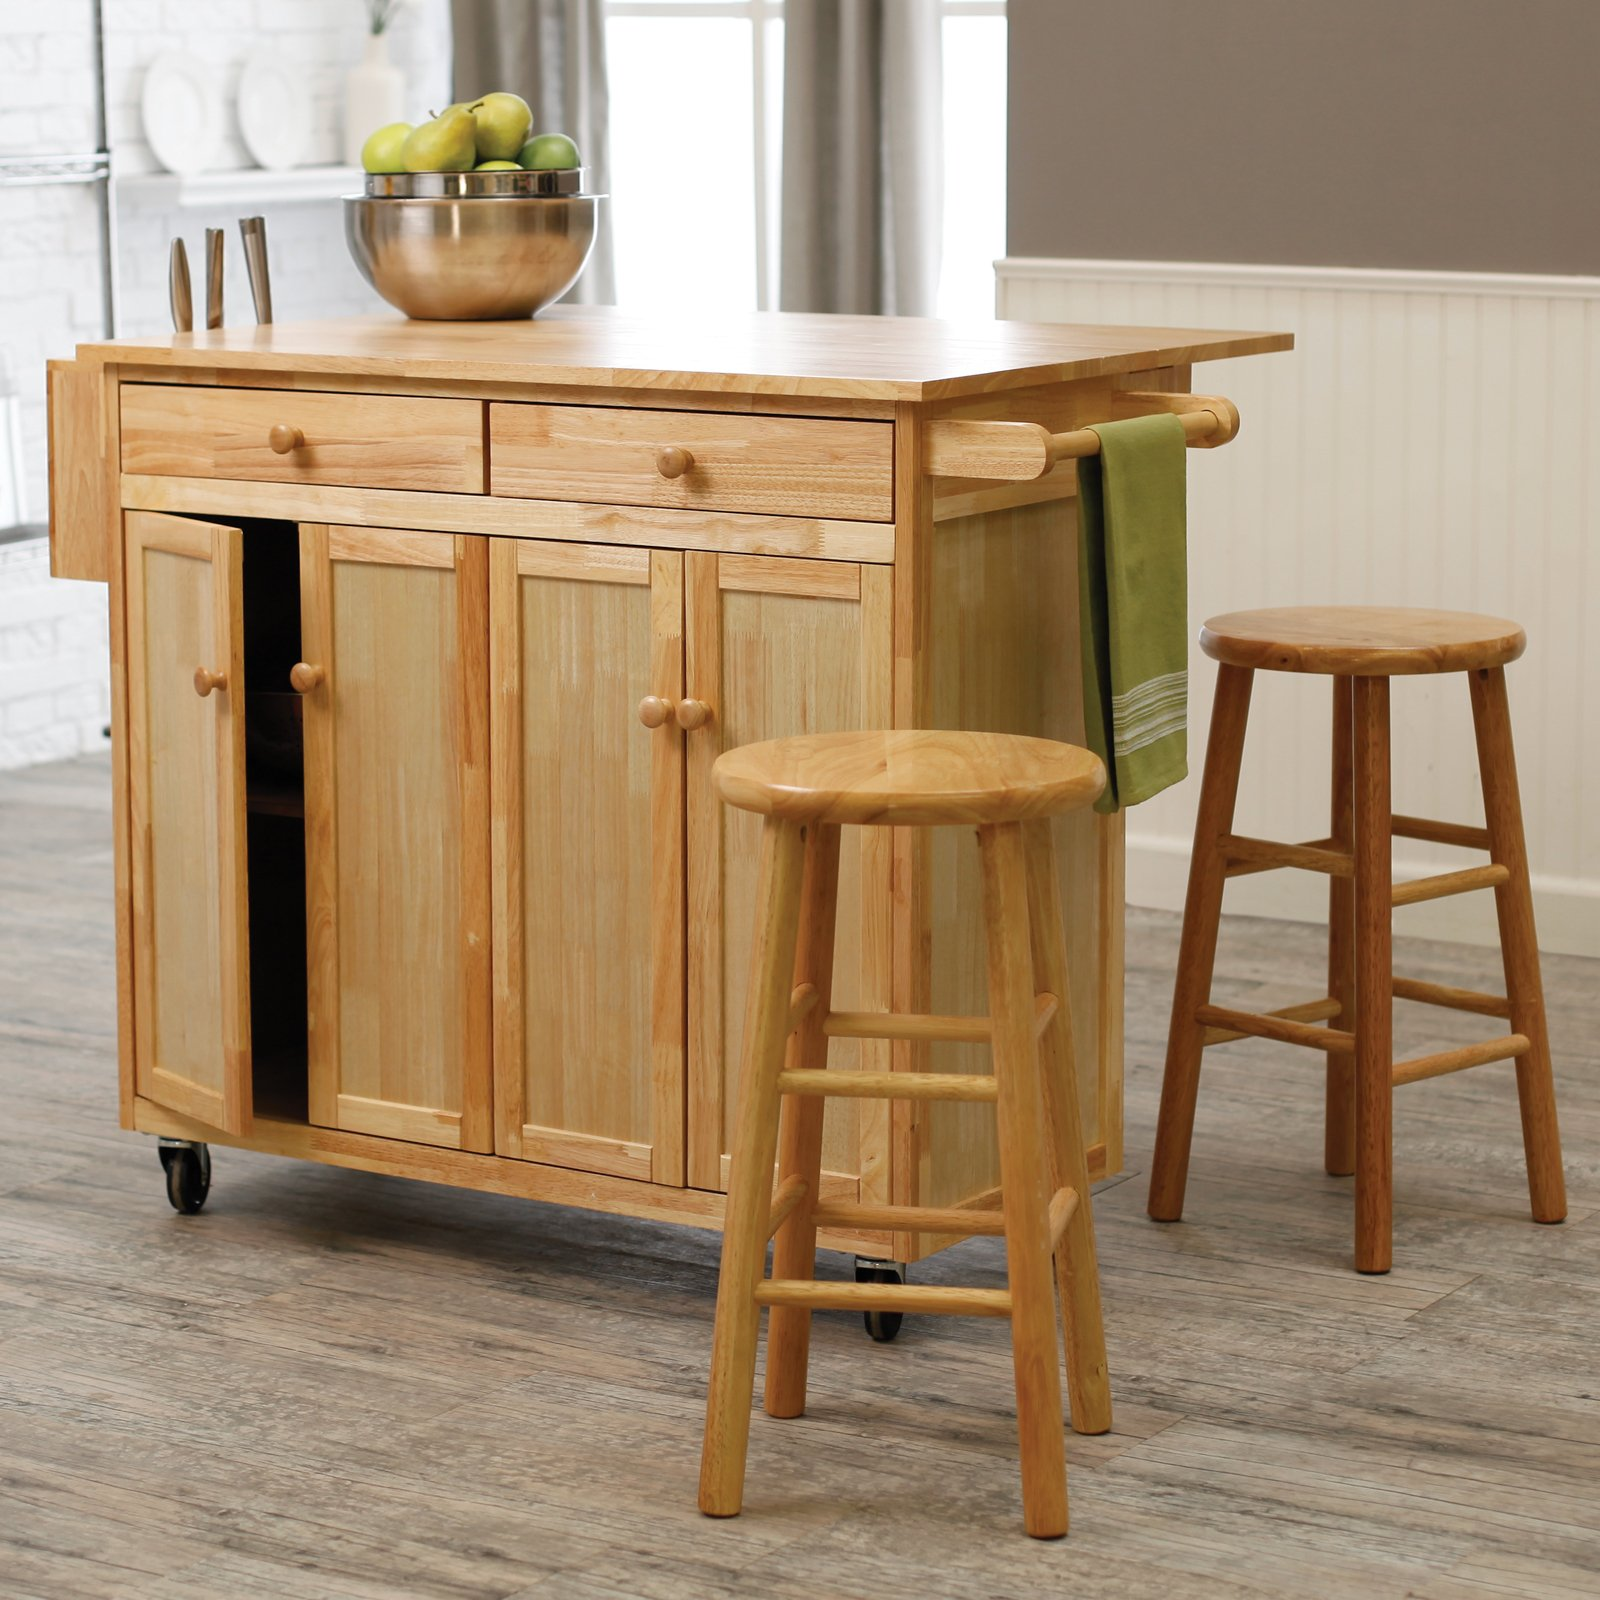 kitchen island on casters kitchen chairs with wheels Wooden Kitchen Island With The Chairs